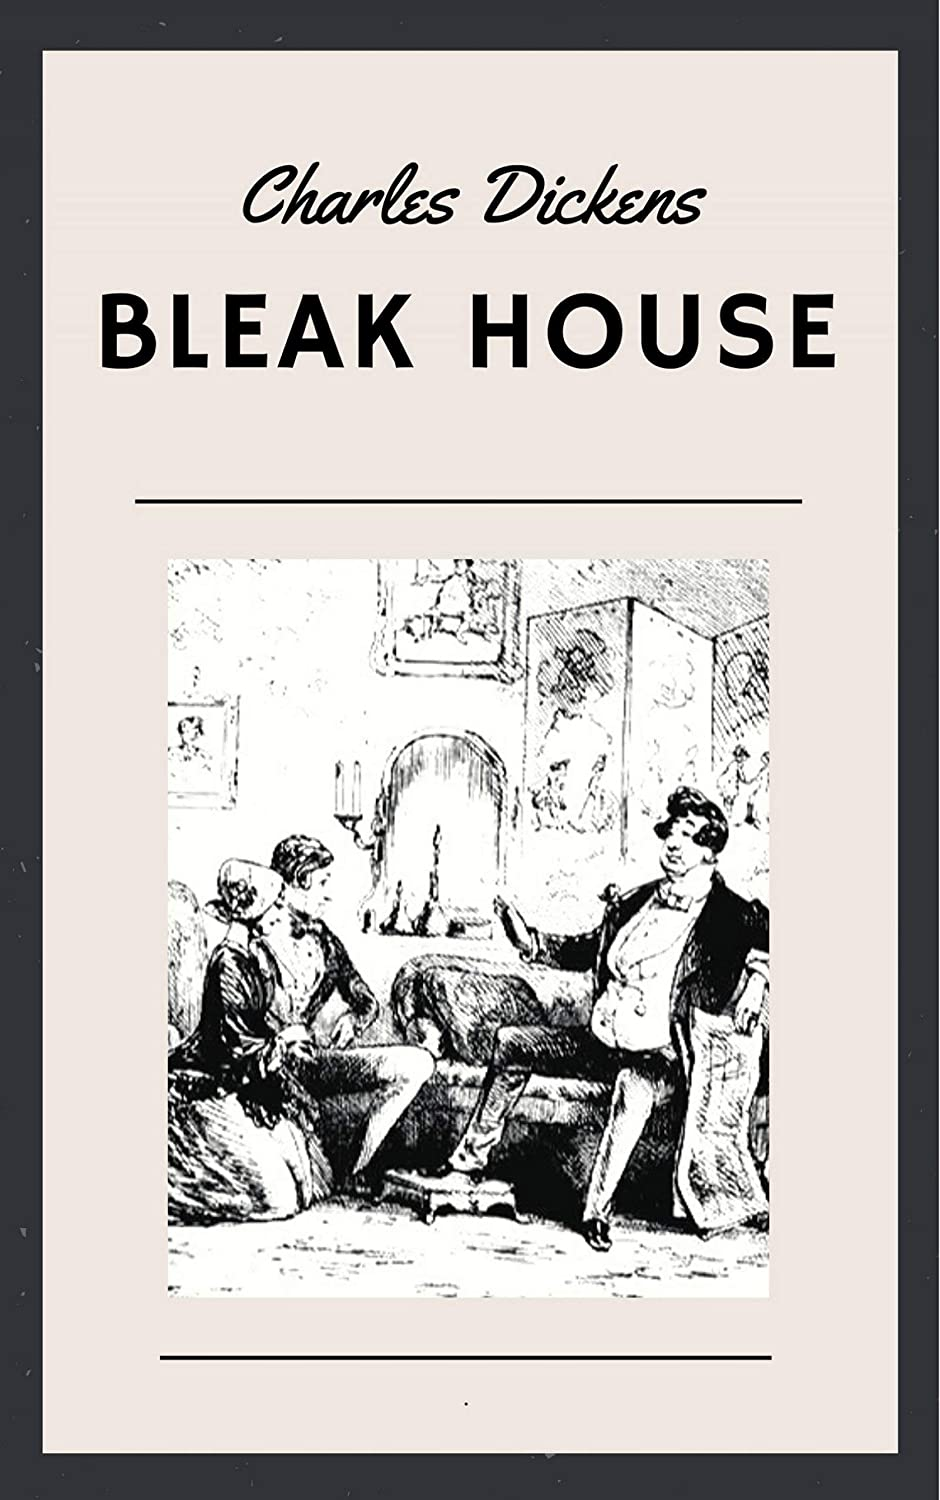 Charles Dickens - Bleak House (English Edition) eBook: Dickens ...